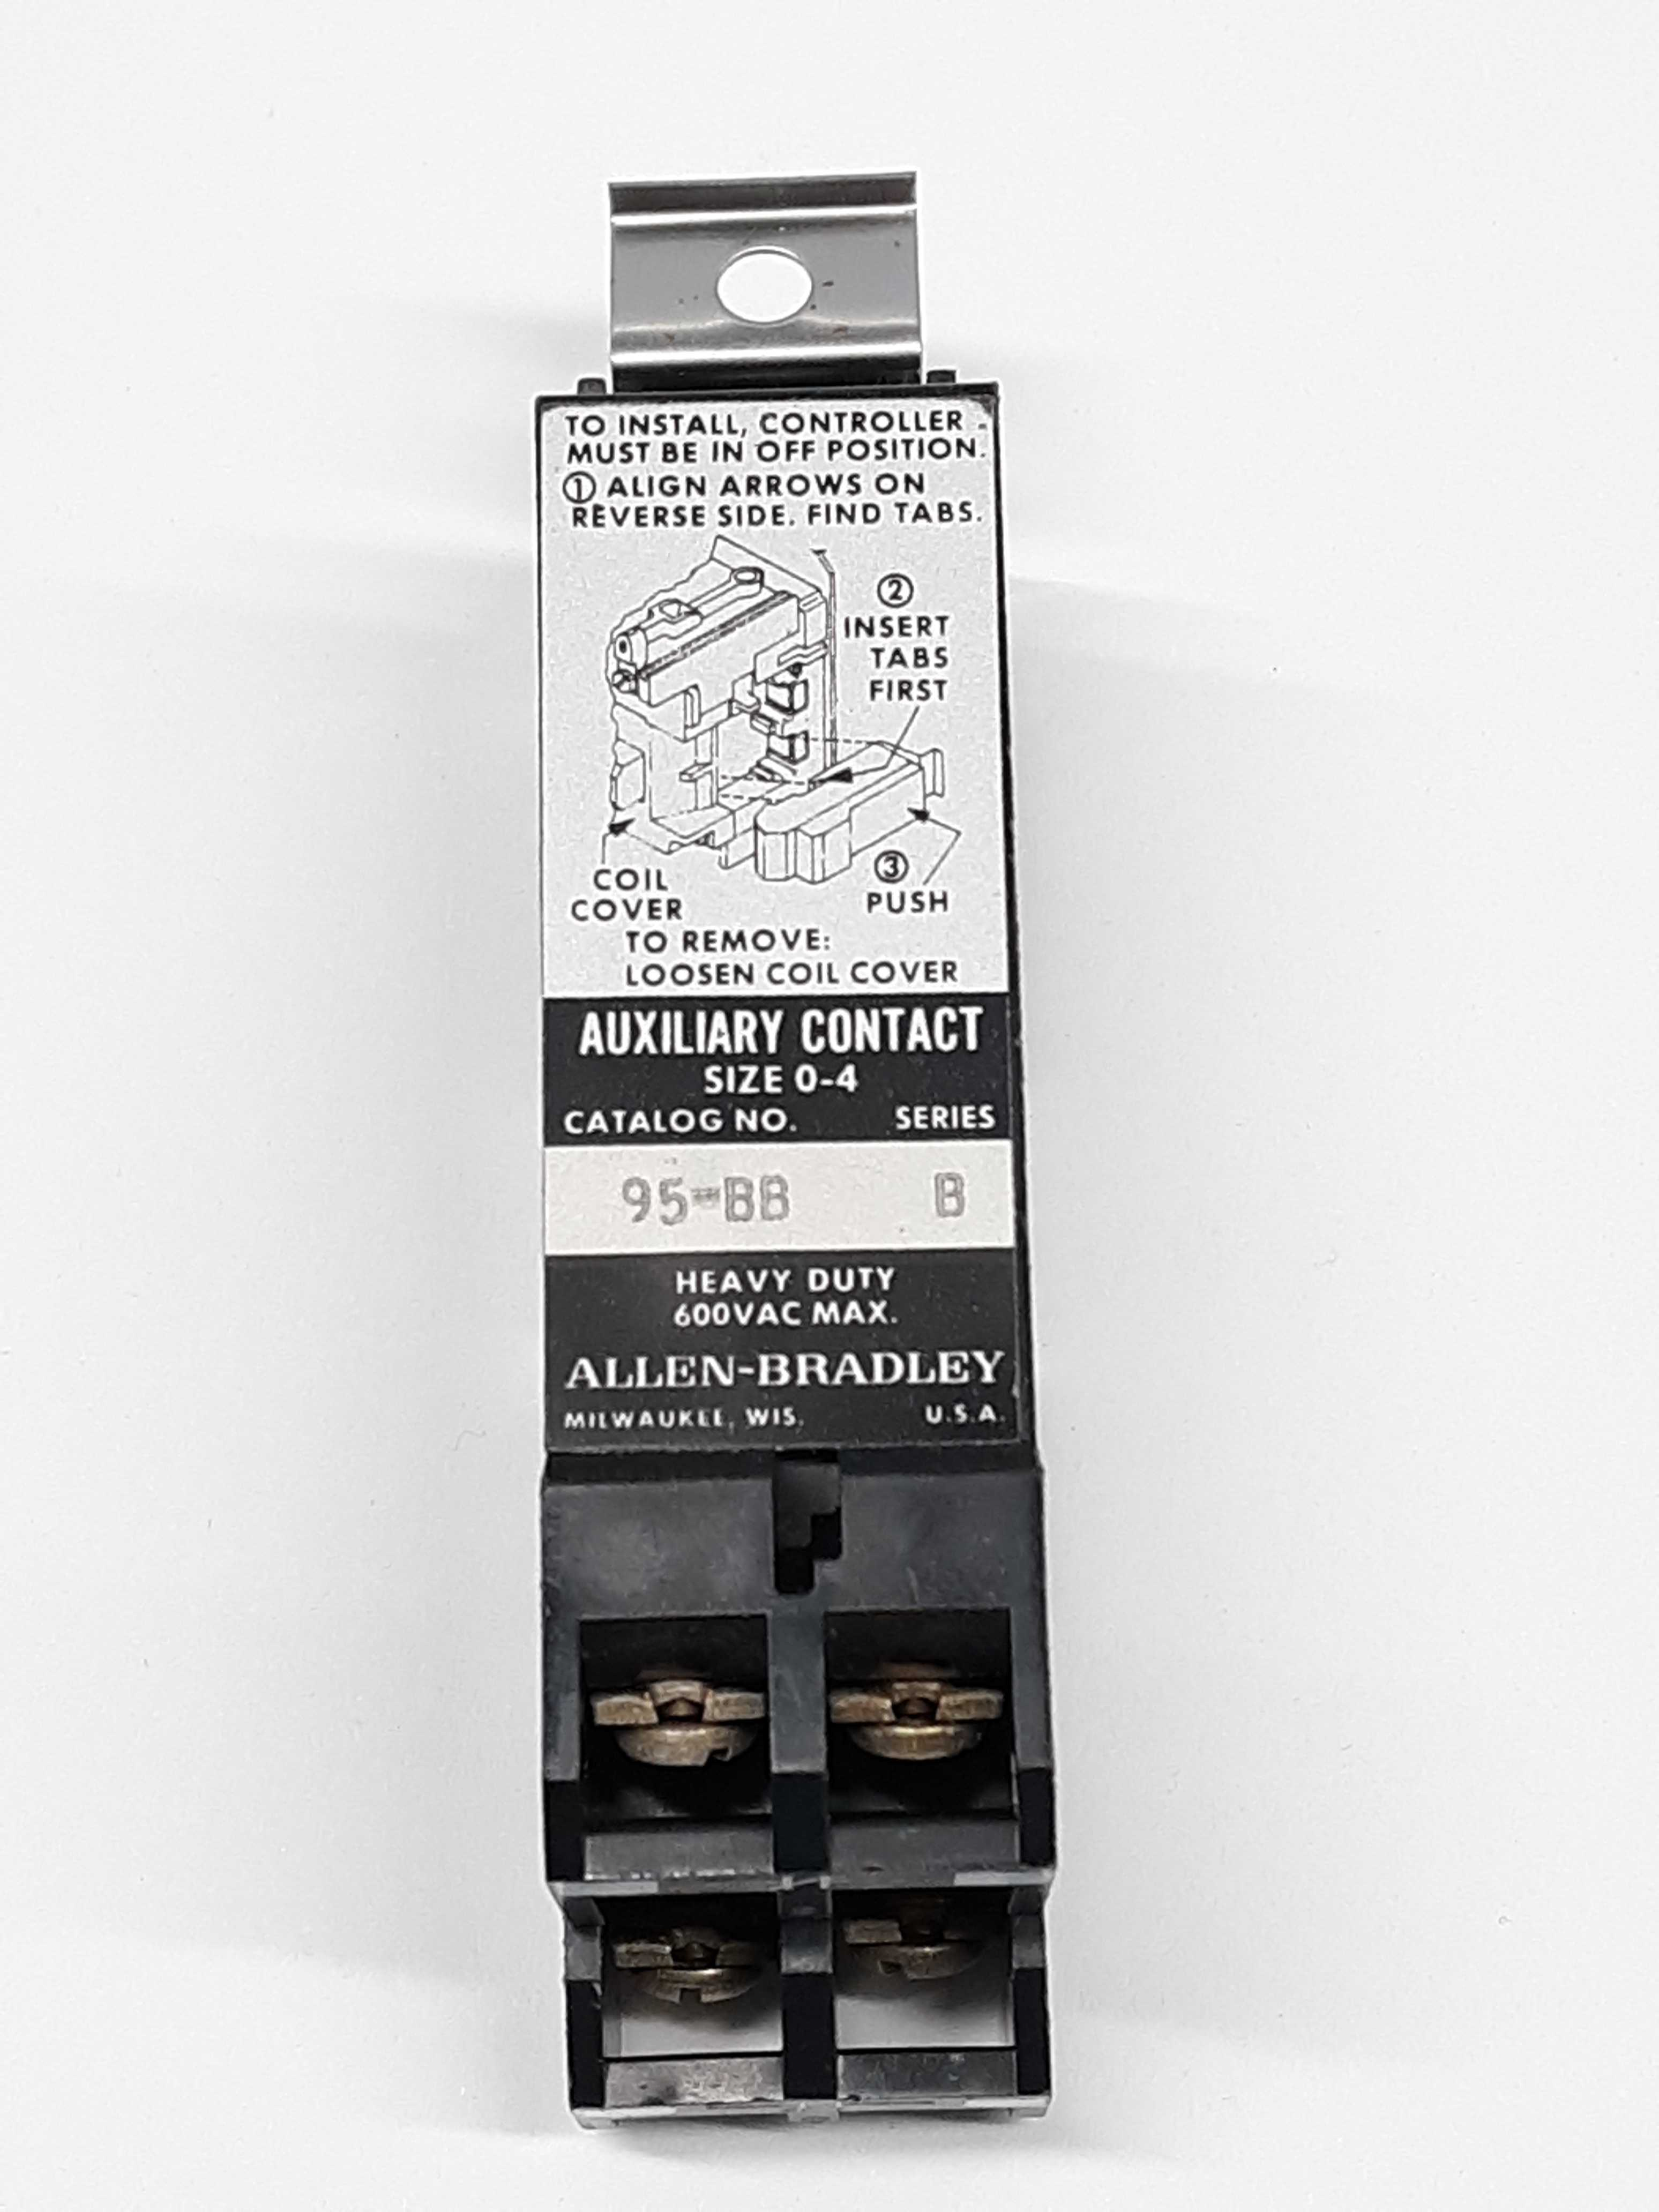 Allen-Bradley 95-BB Auxiliary Contact